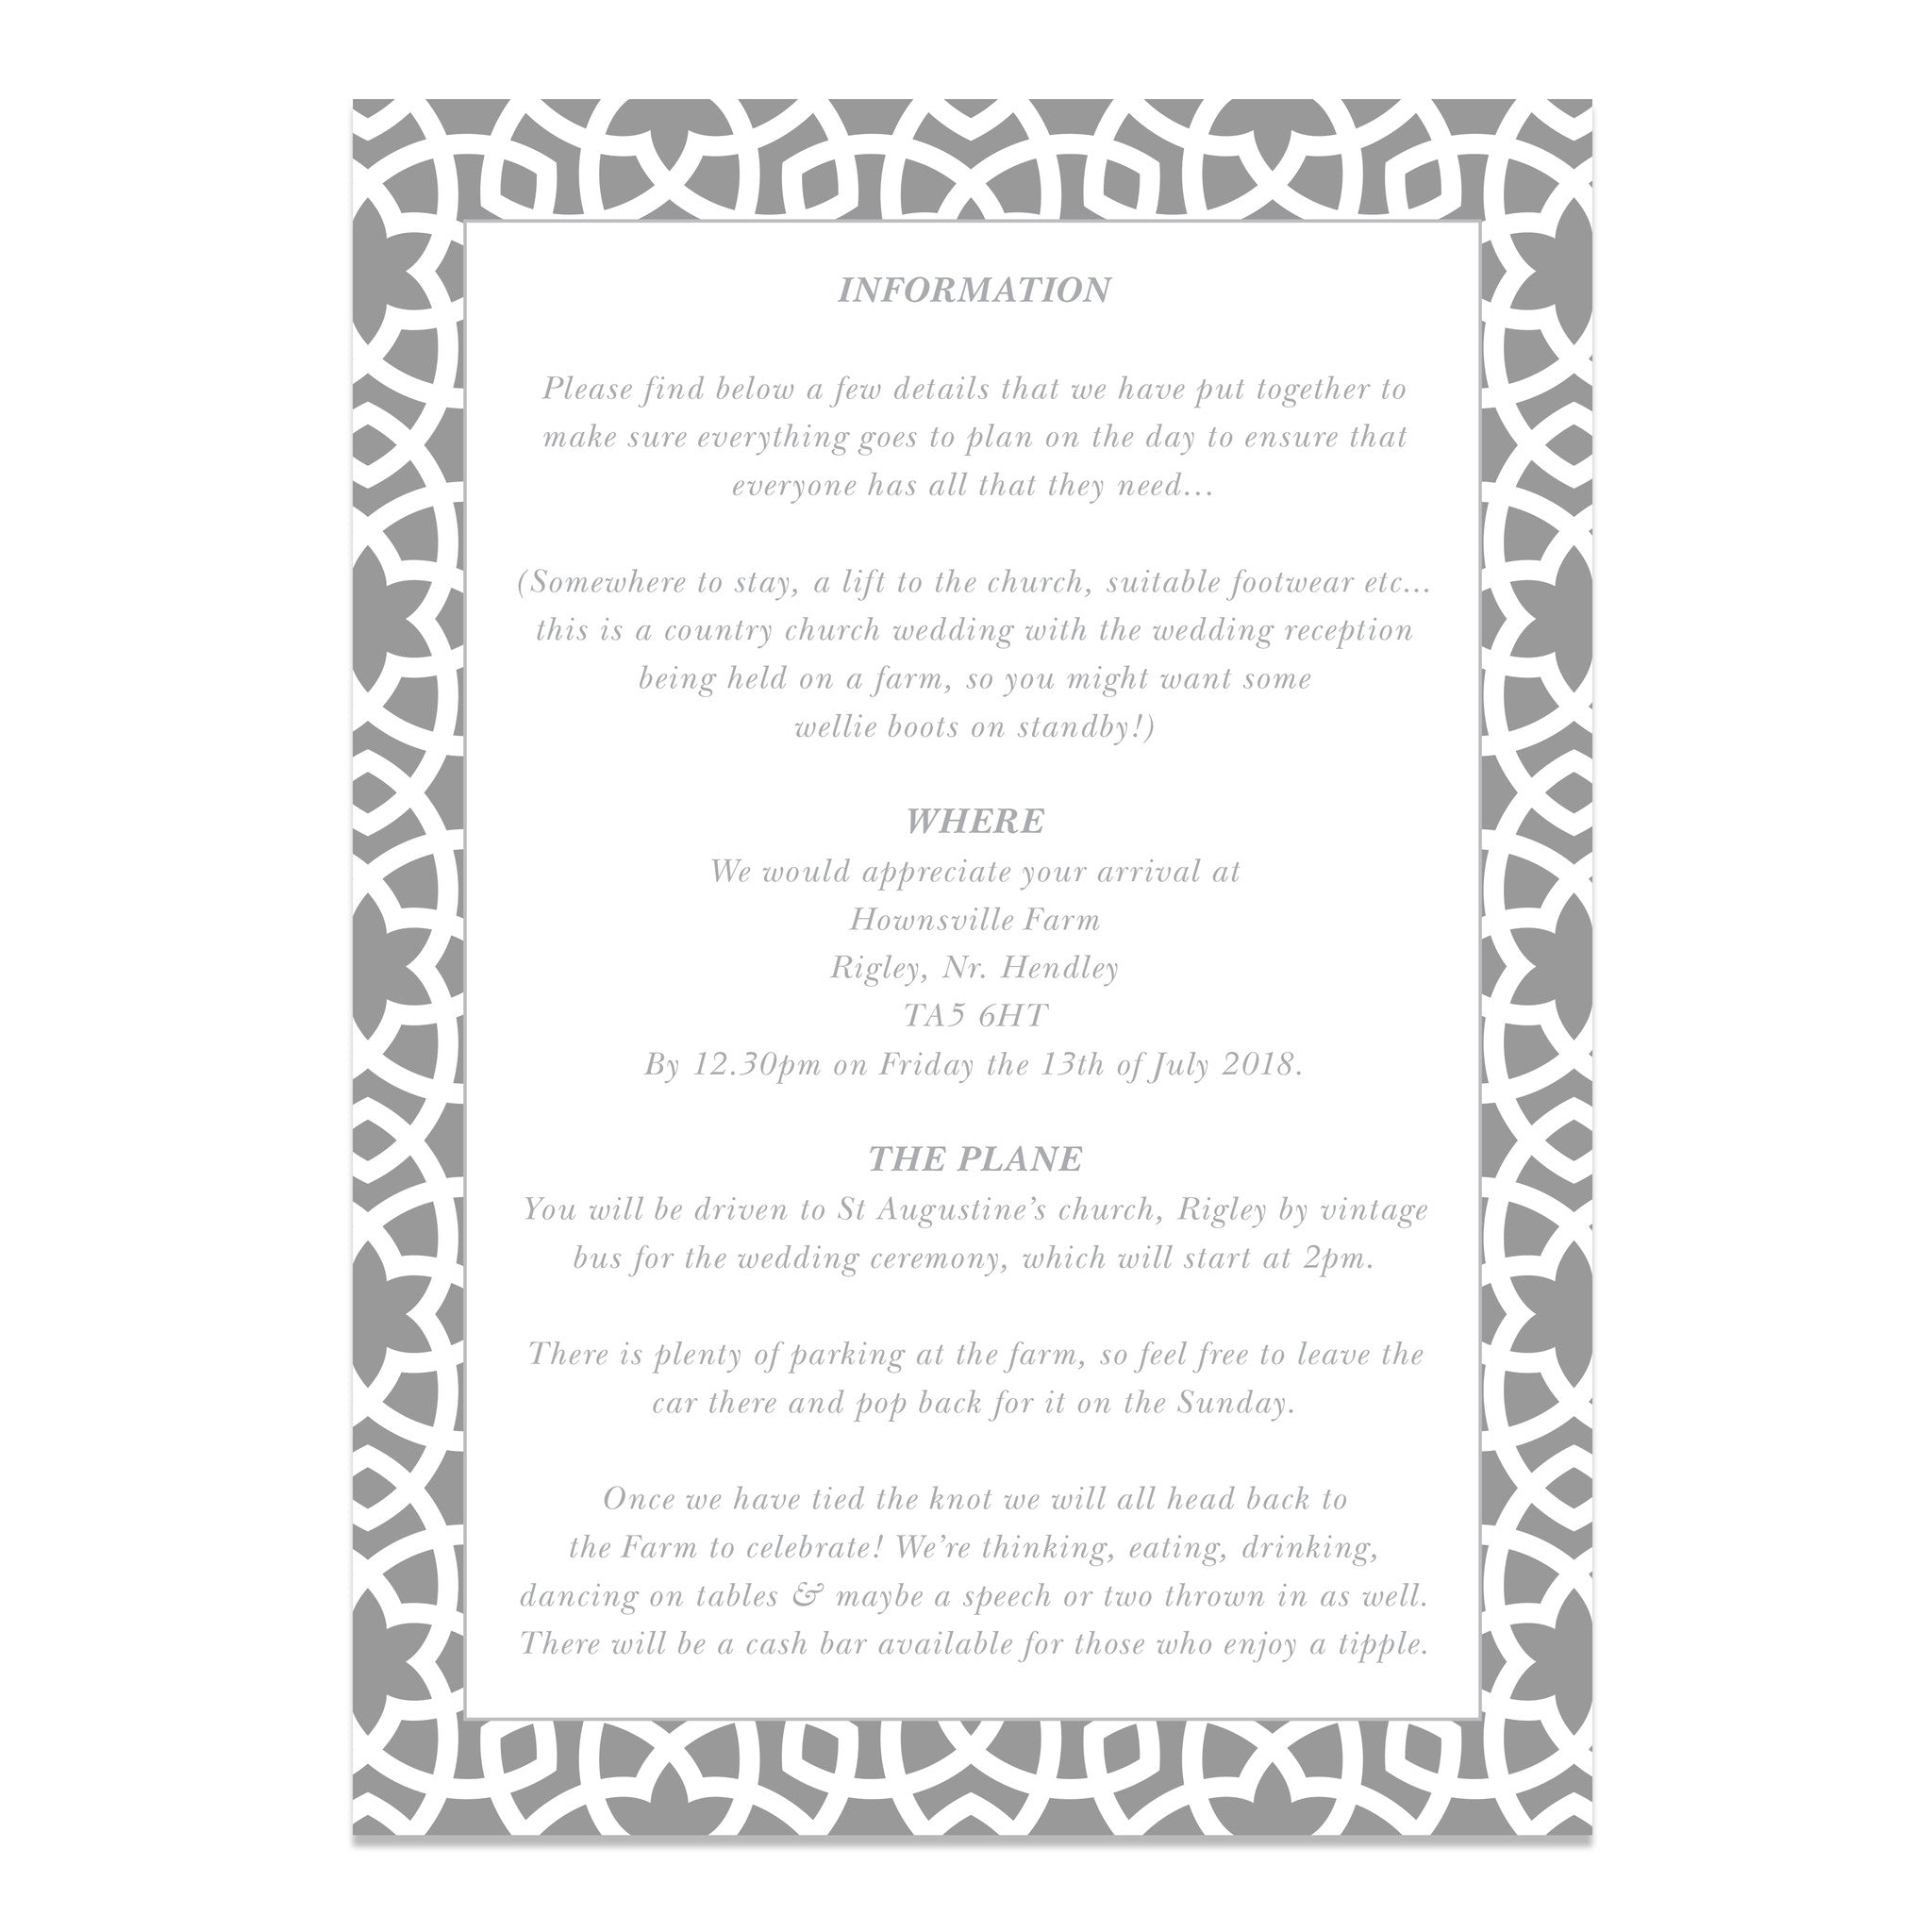 Moroccan Vibes Wedding Information Cards - Wedding Stationery | Old ...